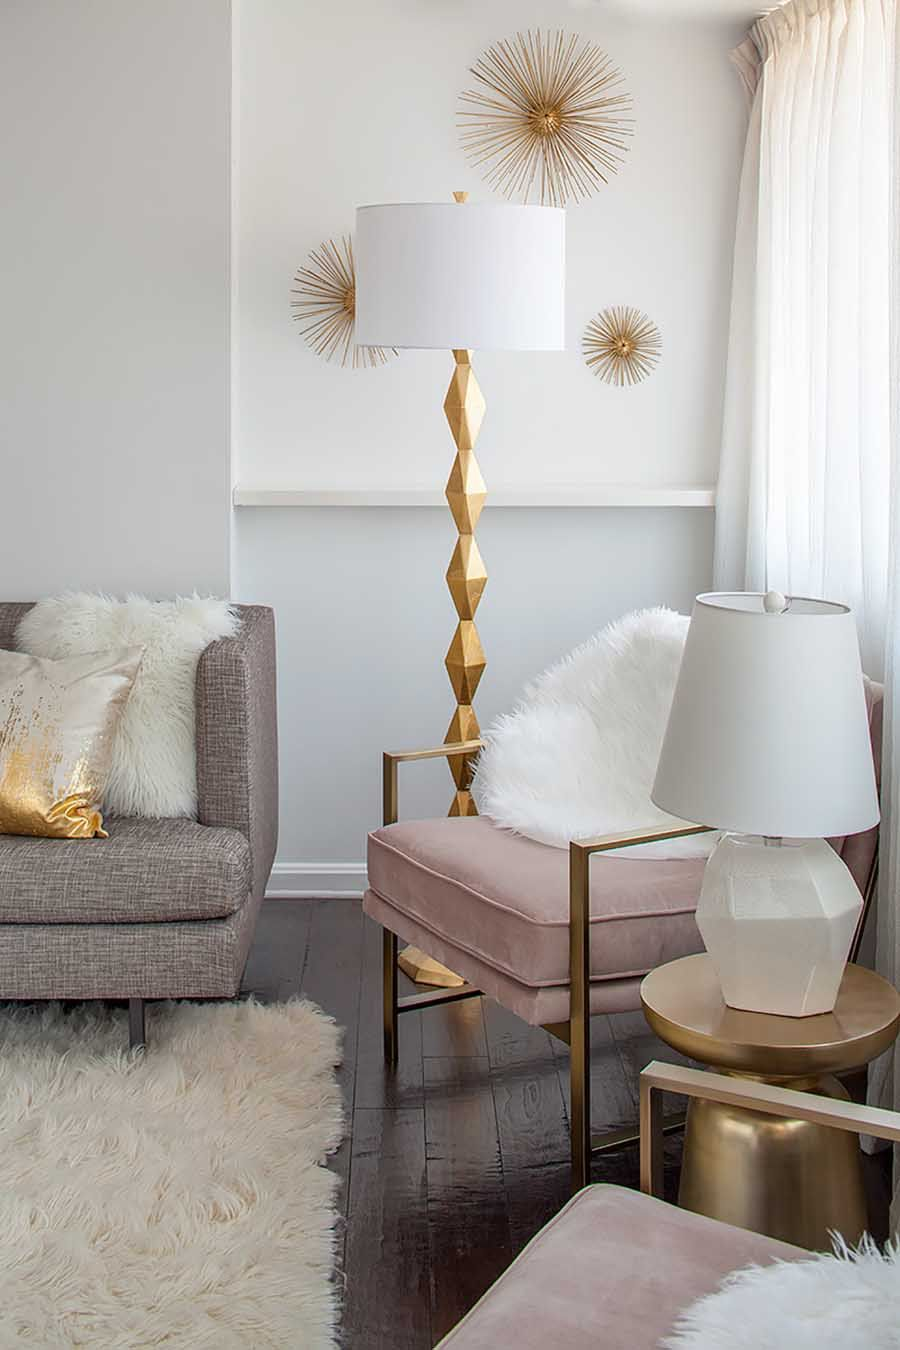 Interior Design Online: Walk Through This Havenly Home Transformation With